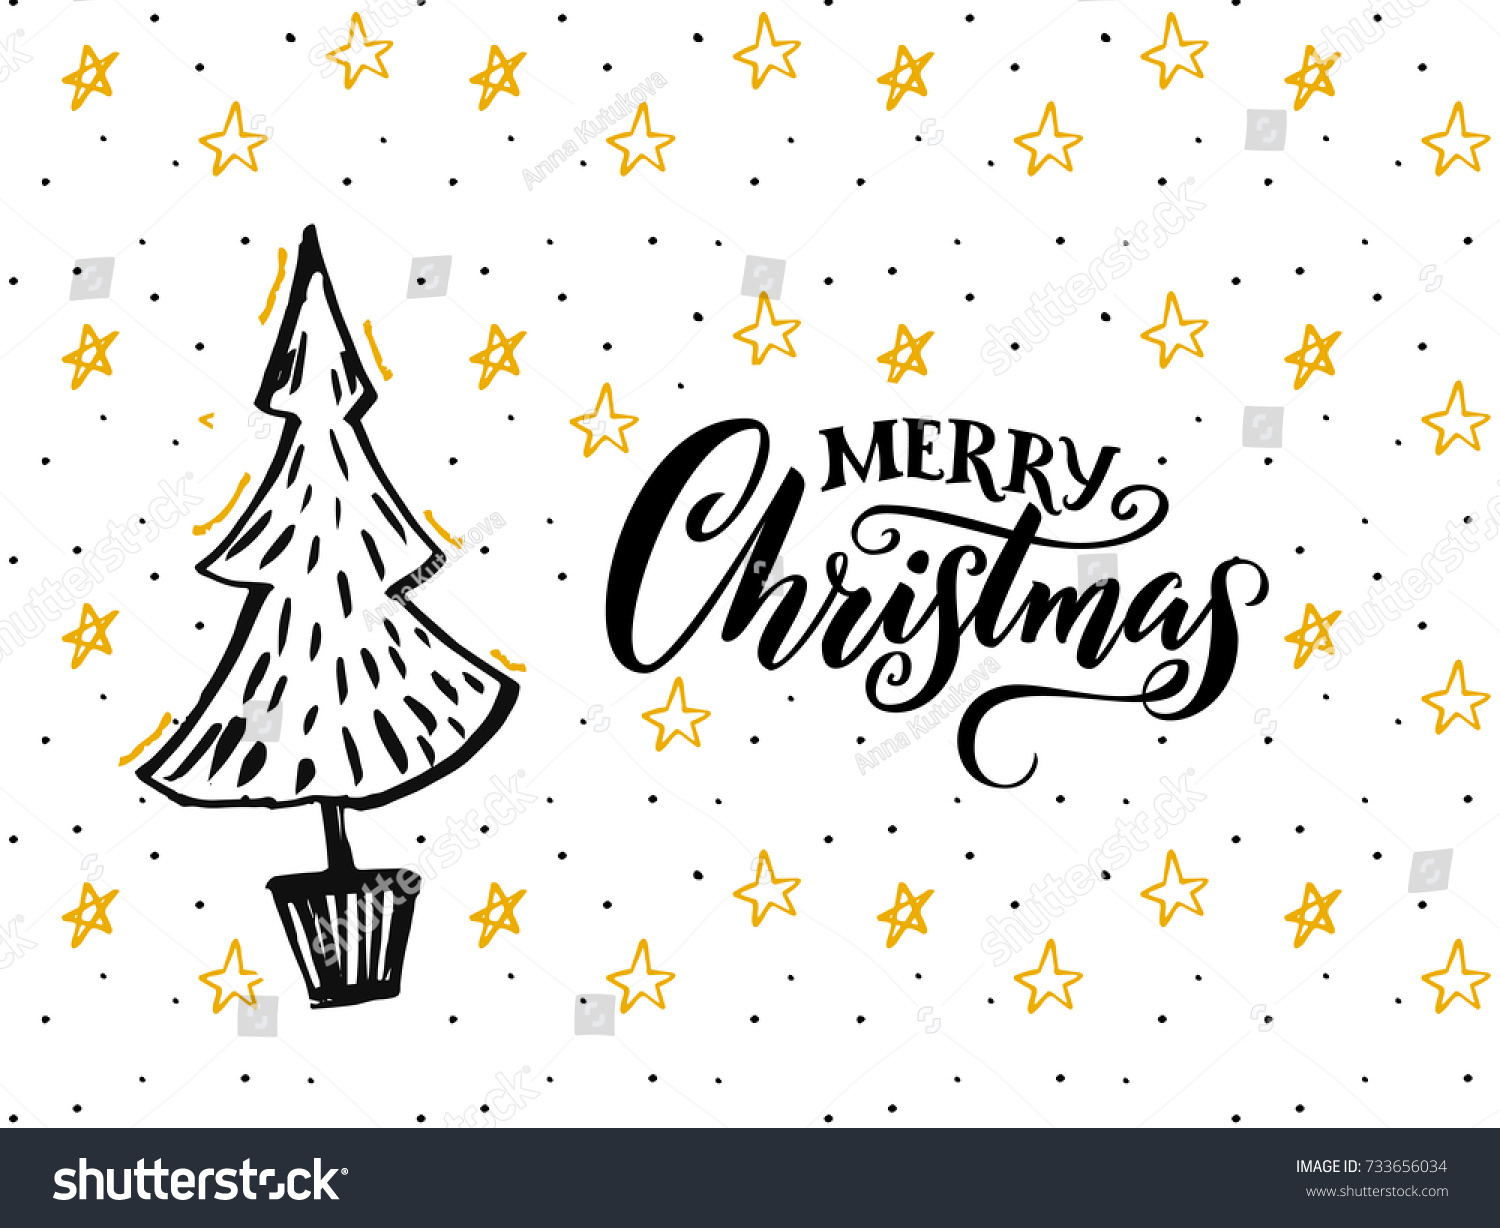 Merry Christmas Card Design Hand Drawn Stock Vector (Royalty Free ...